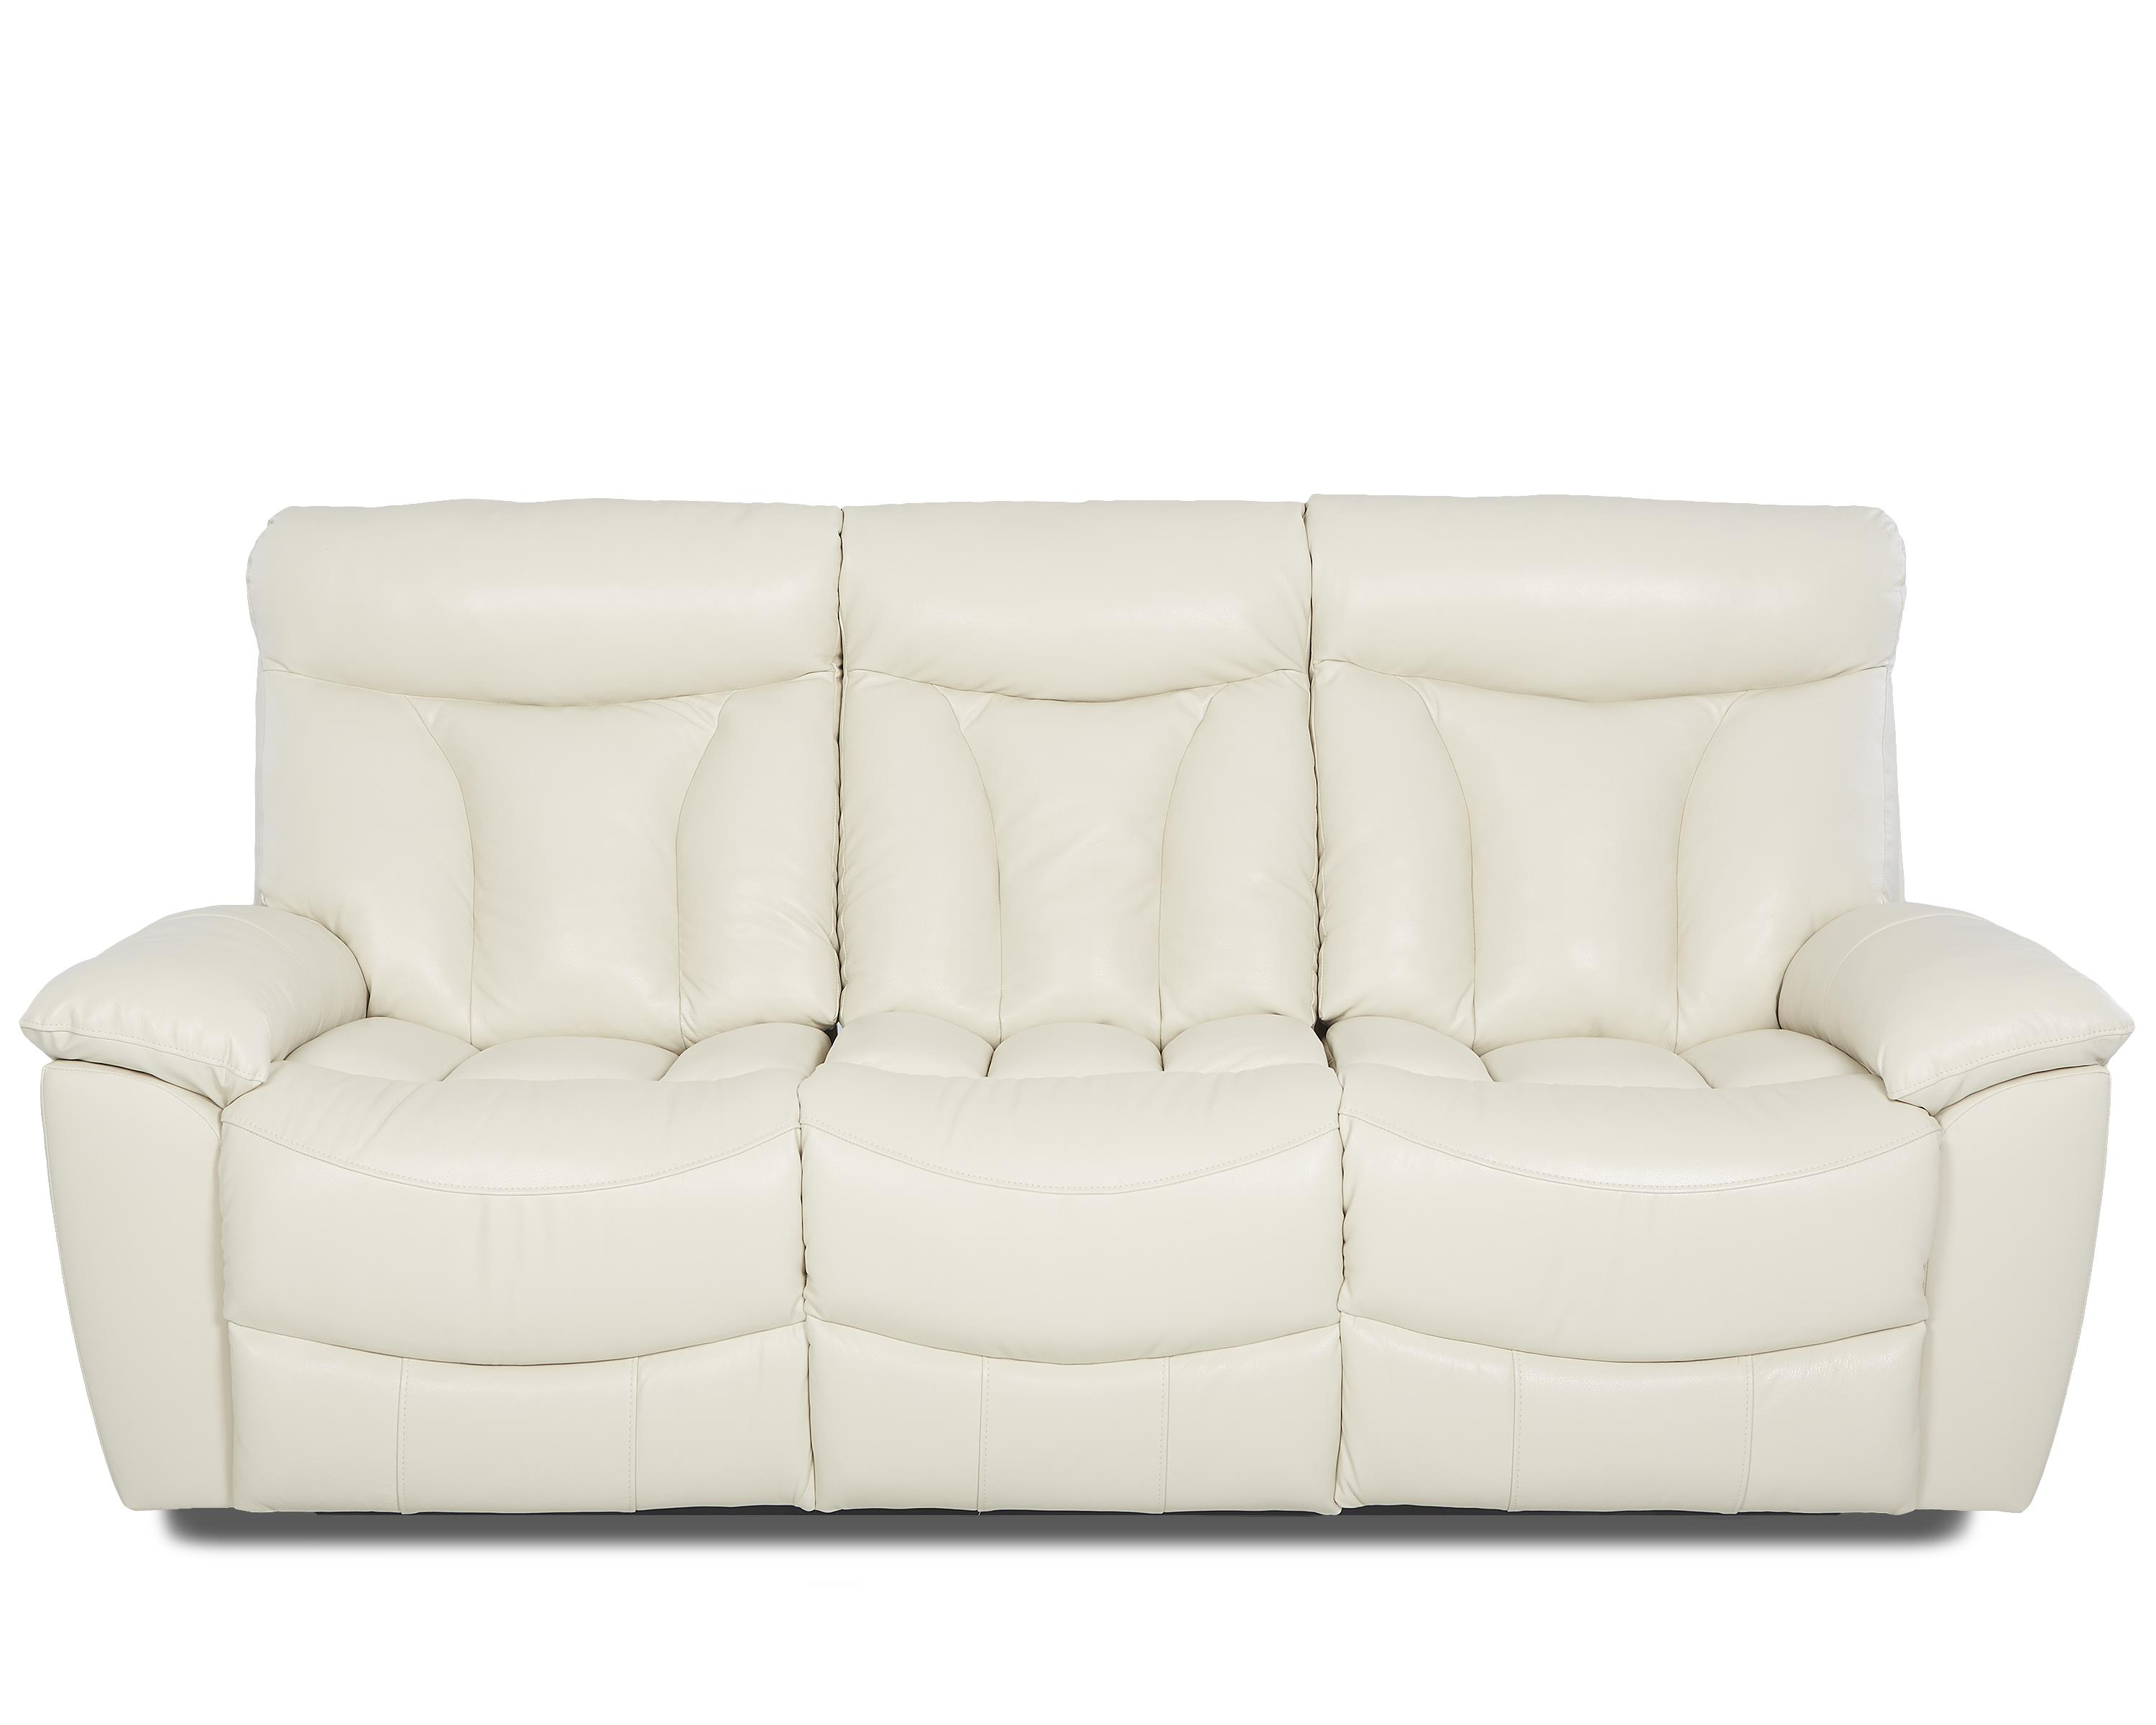 Deluxe Reclining Sofa by Klaussner at Northeast Factory Direct